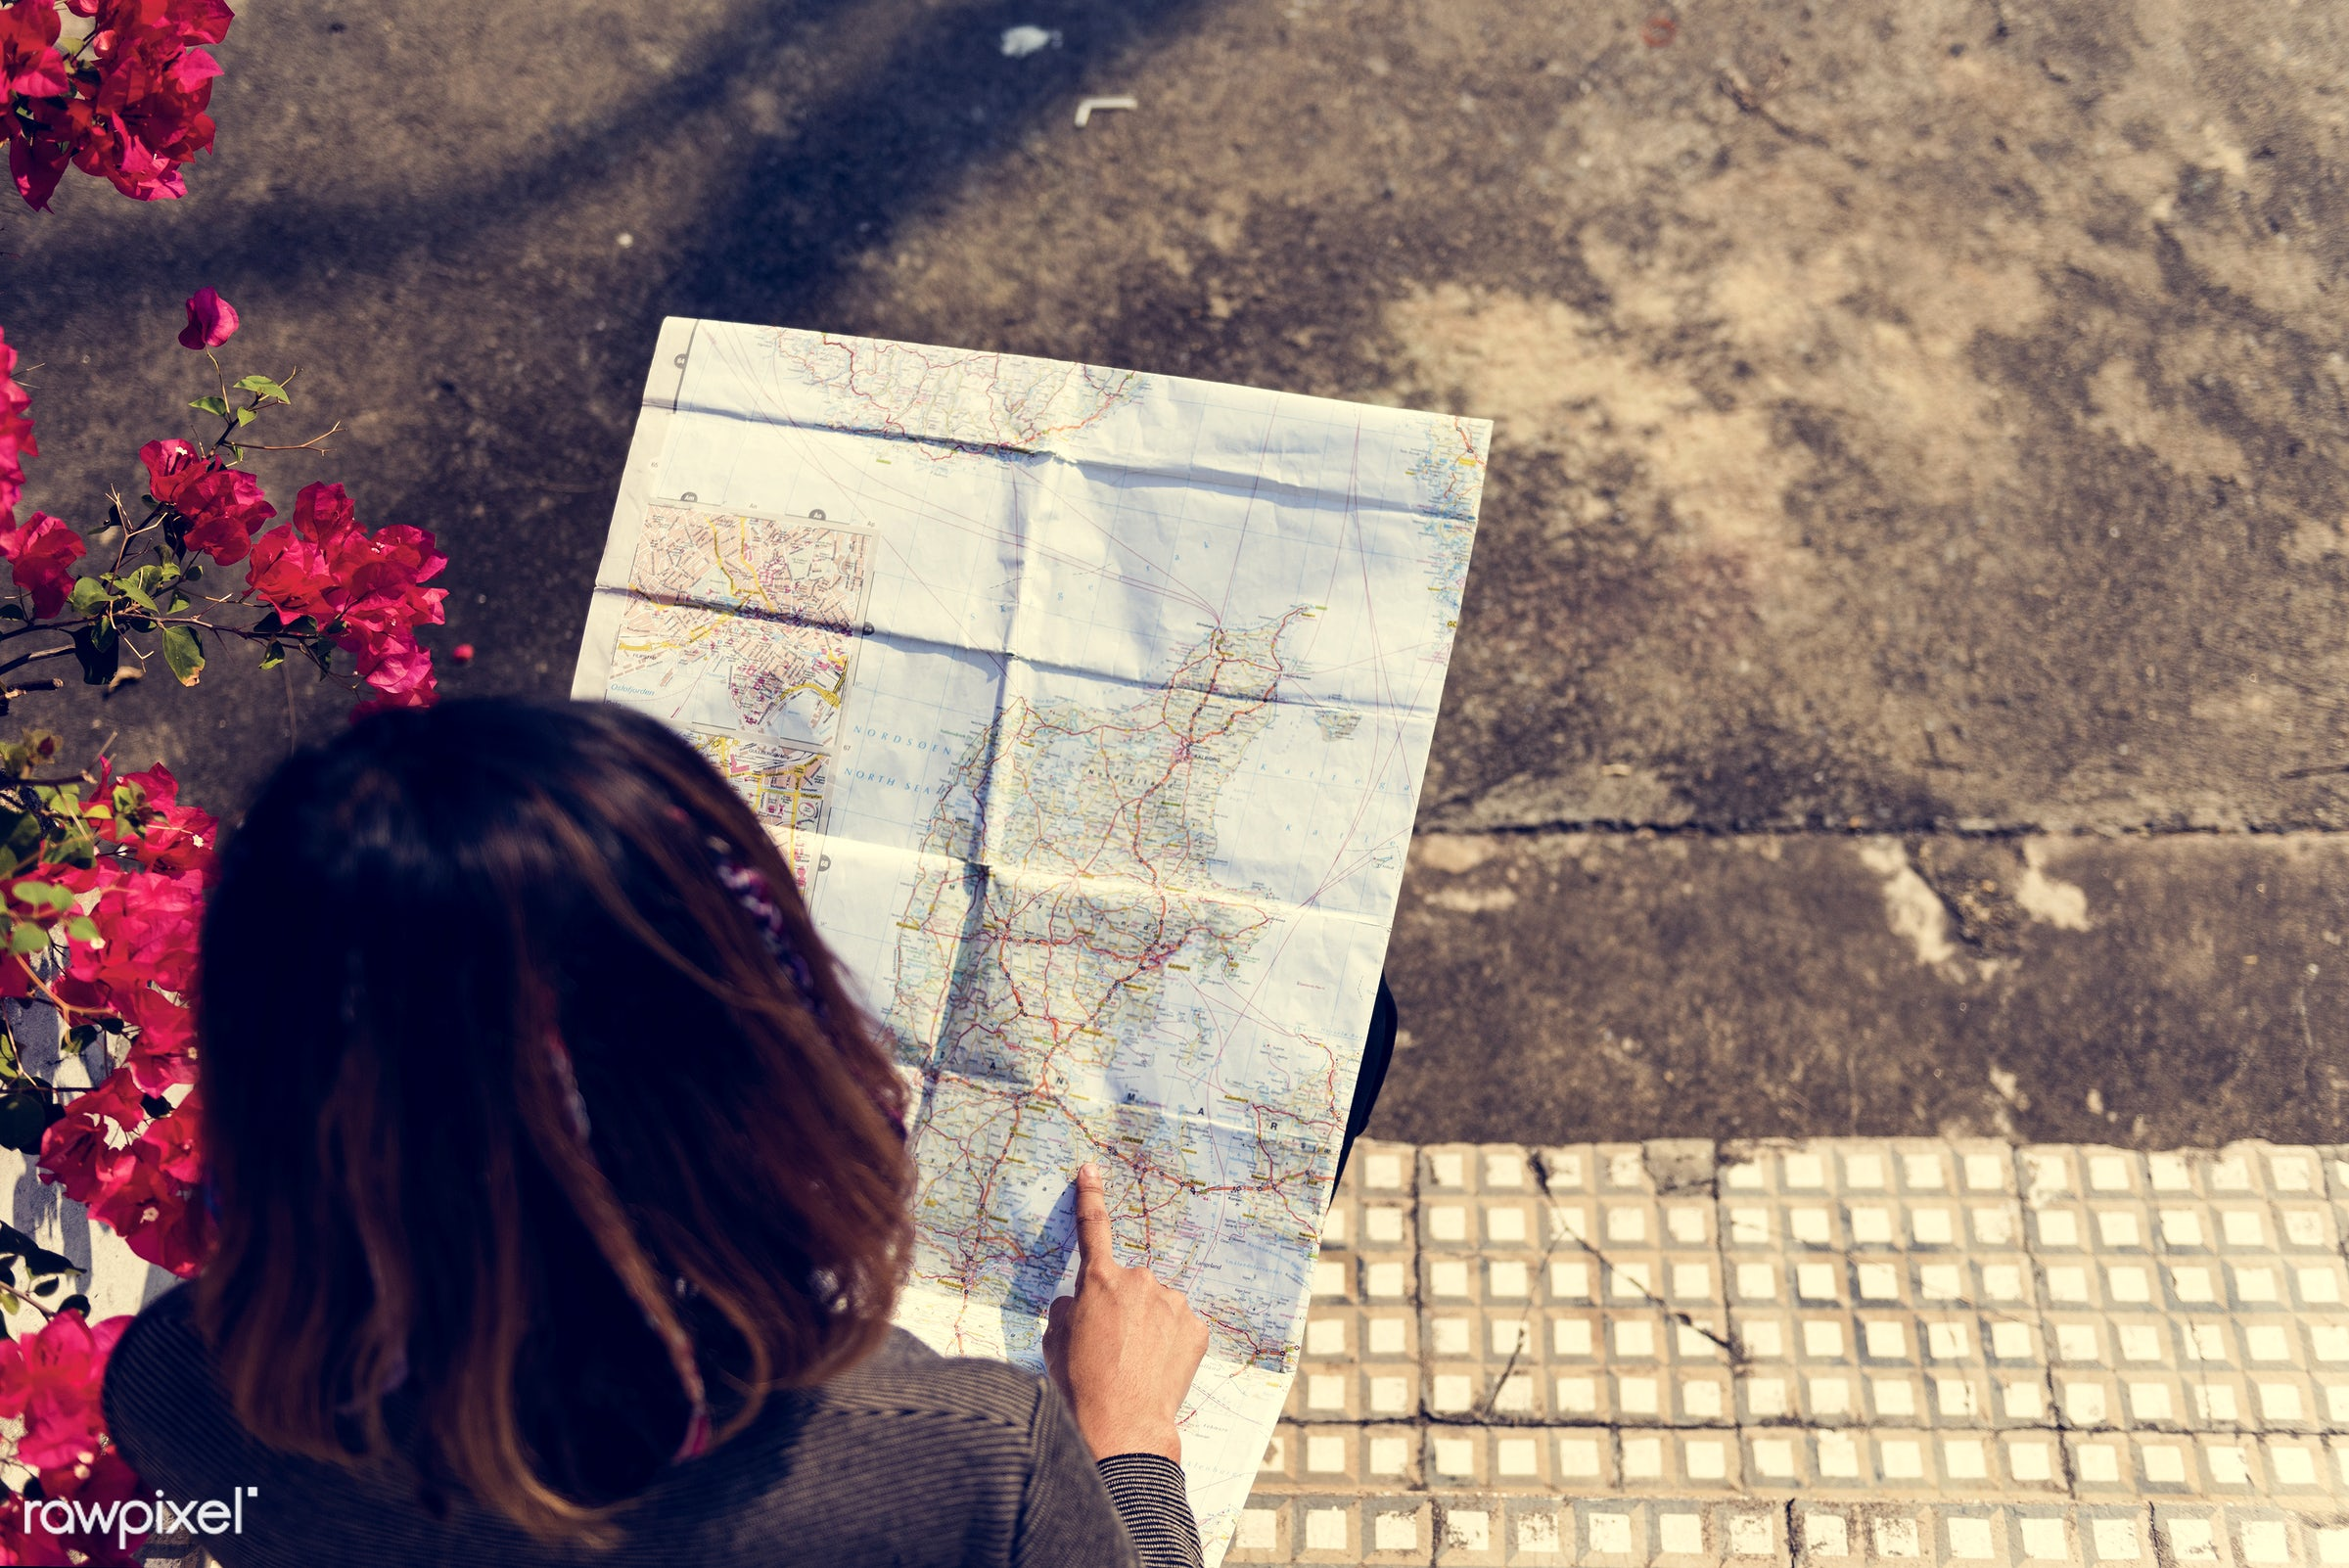 woman, girl, travel, trip, navigation, map, guide, direction, aerial view, alone